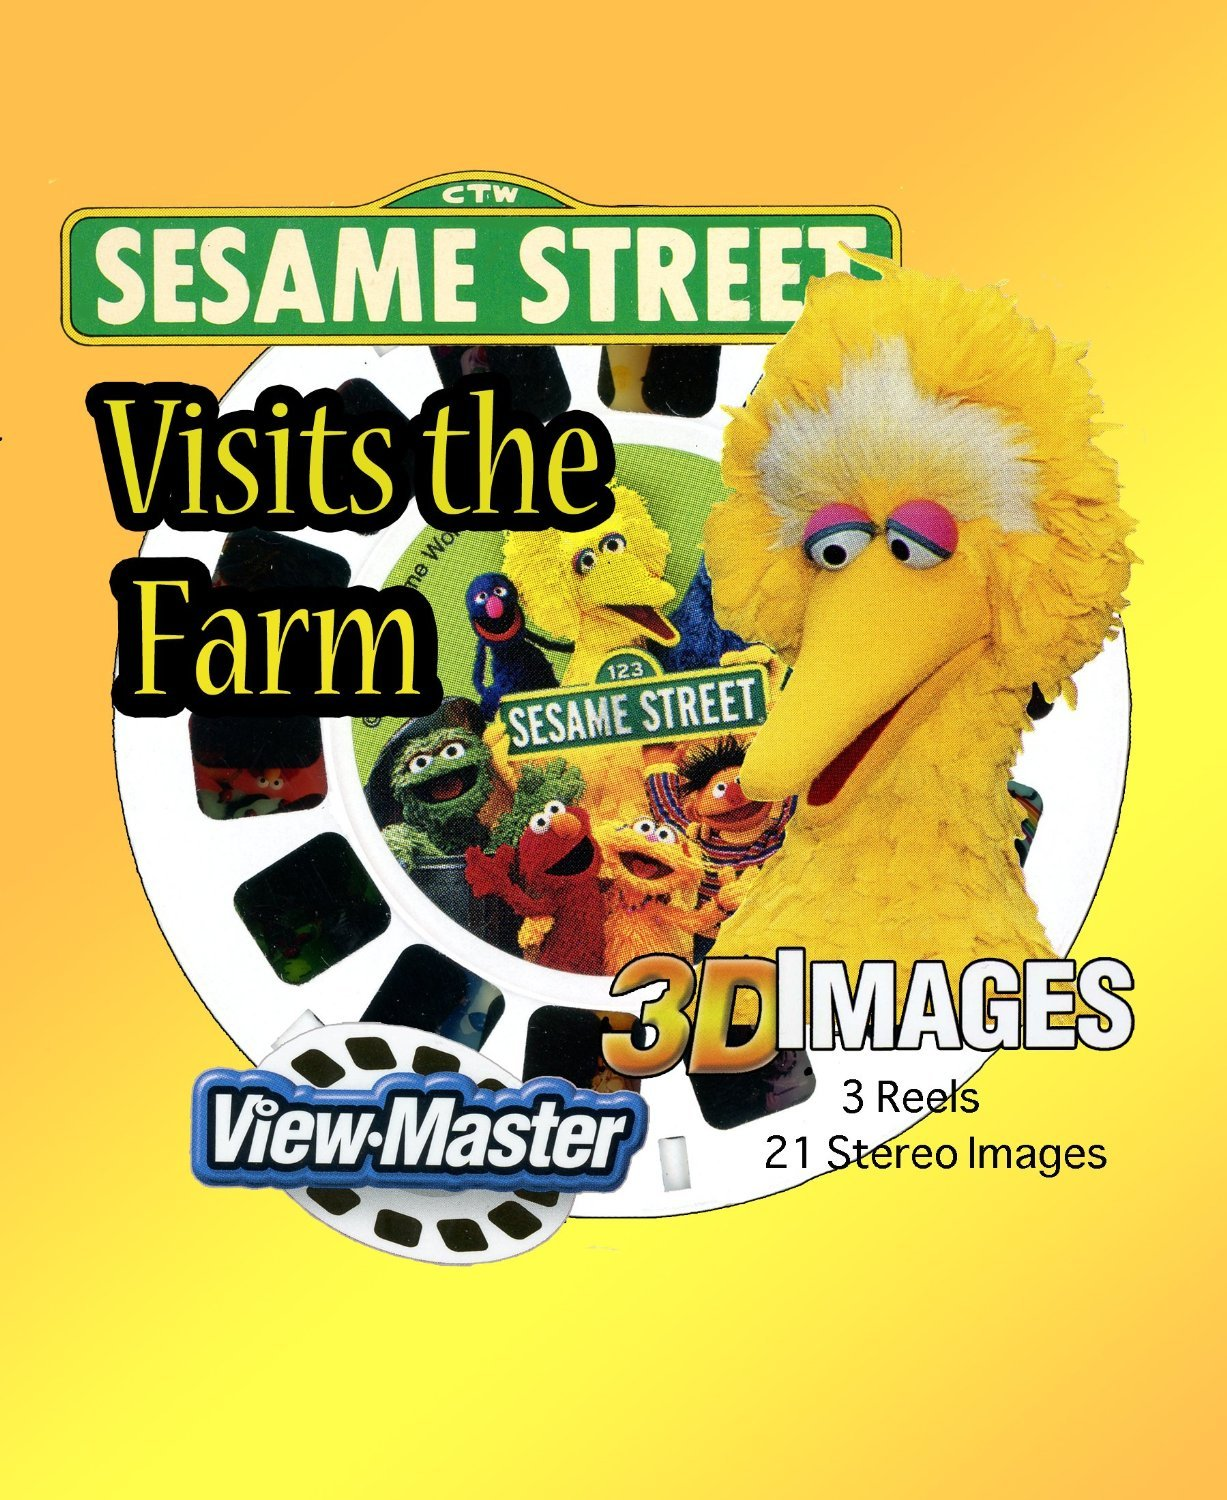 Sesame Visits the Farm - Classic ViewMaster - 3 Reel Set - 21 3D Images - Bert & Ernie, Big Bird by 3Dstereo ViewMaster